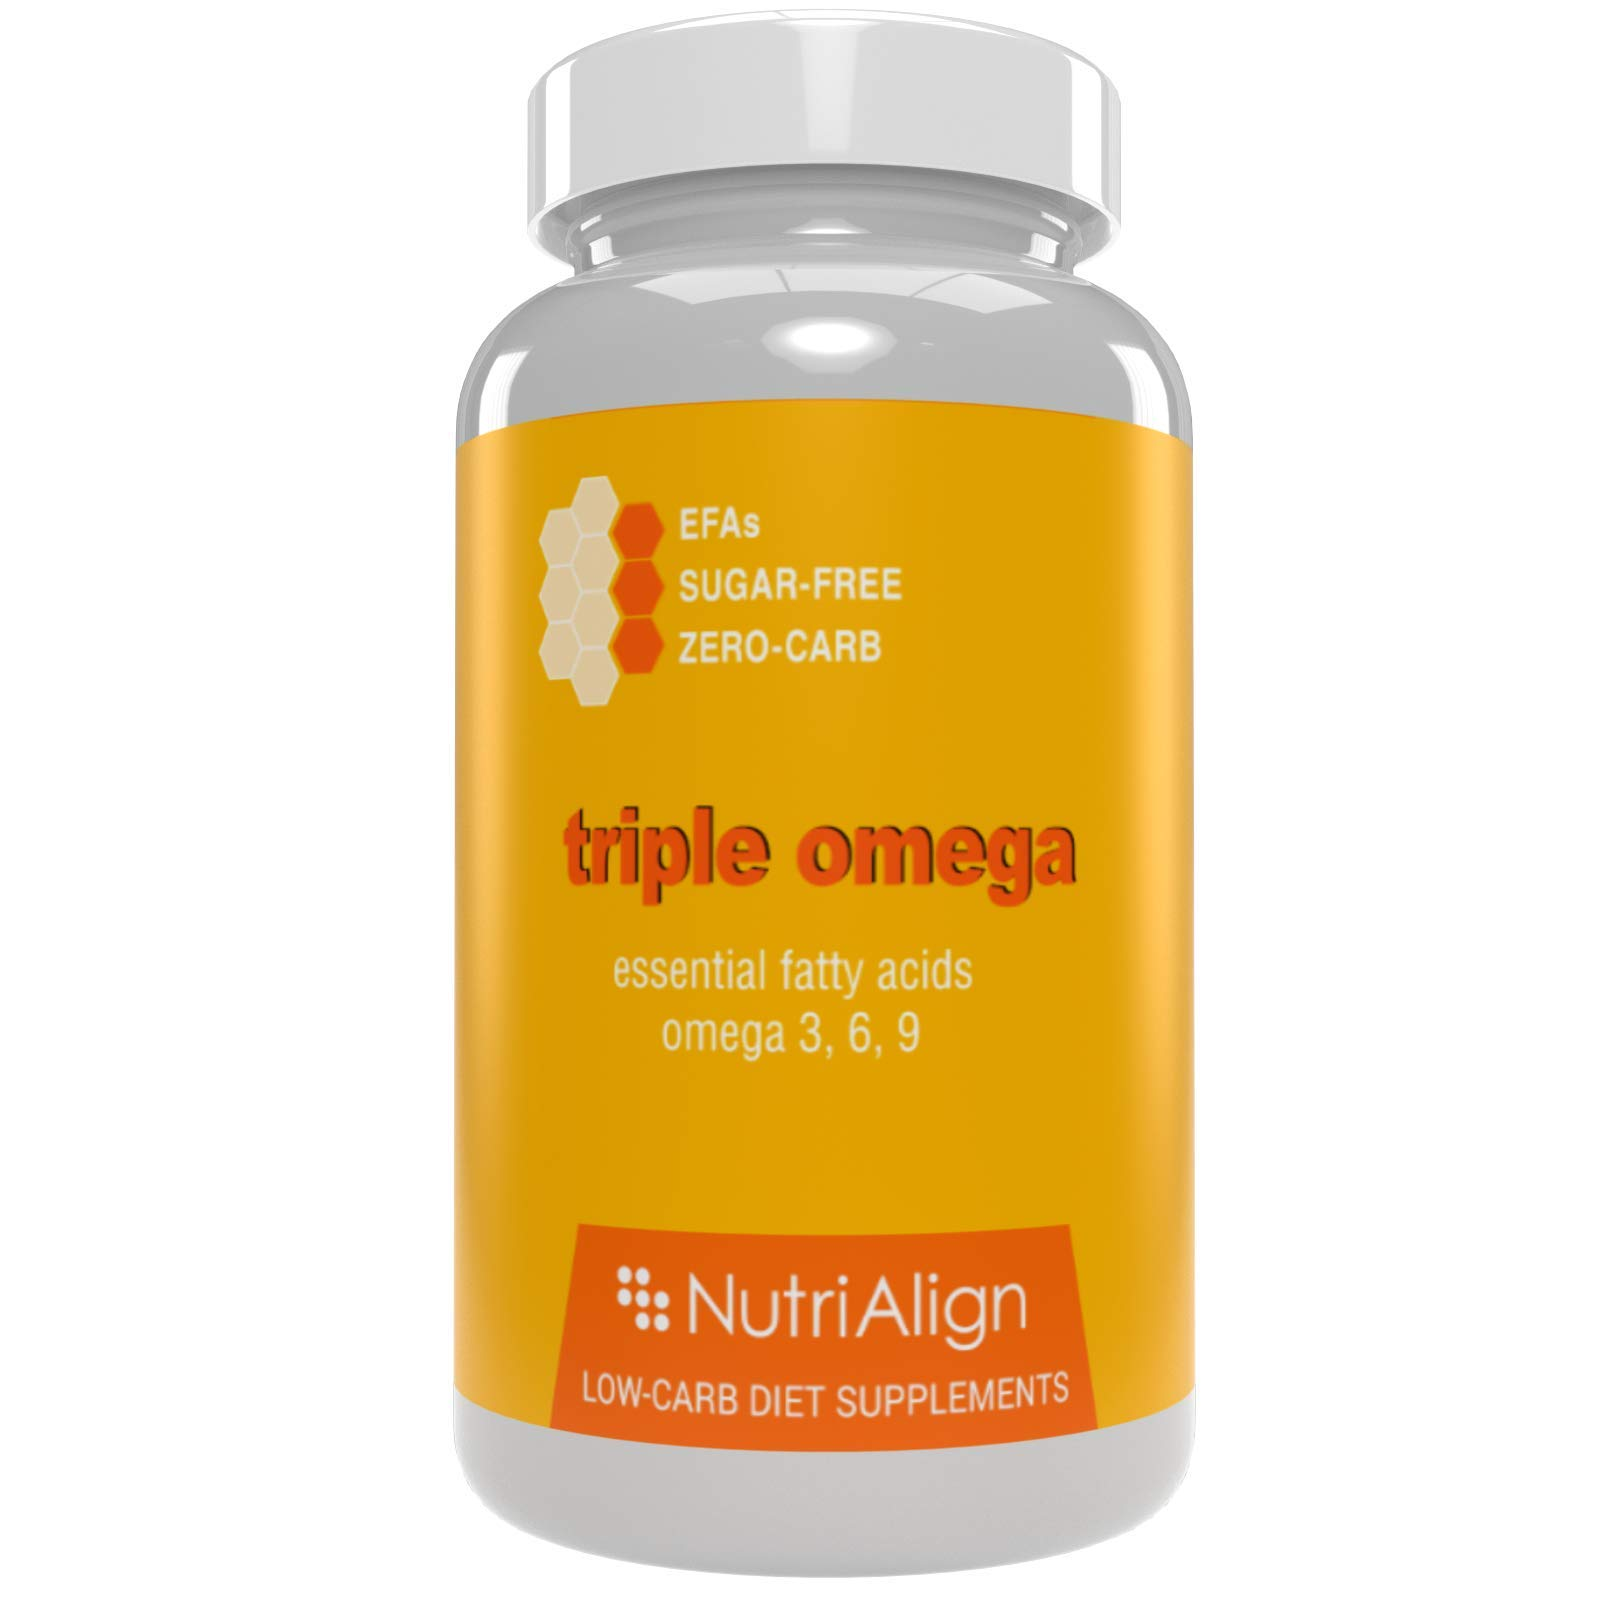 Nutri-Align Triple Omegas: Low-Carb Diet Supplement. Essential Omega Oils 3, 6 and 9 | Zero-carb. 90 Capsules. by Nutri-Align